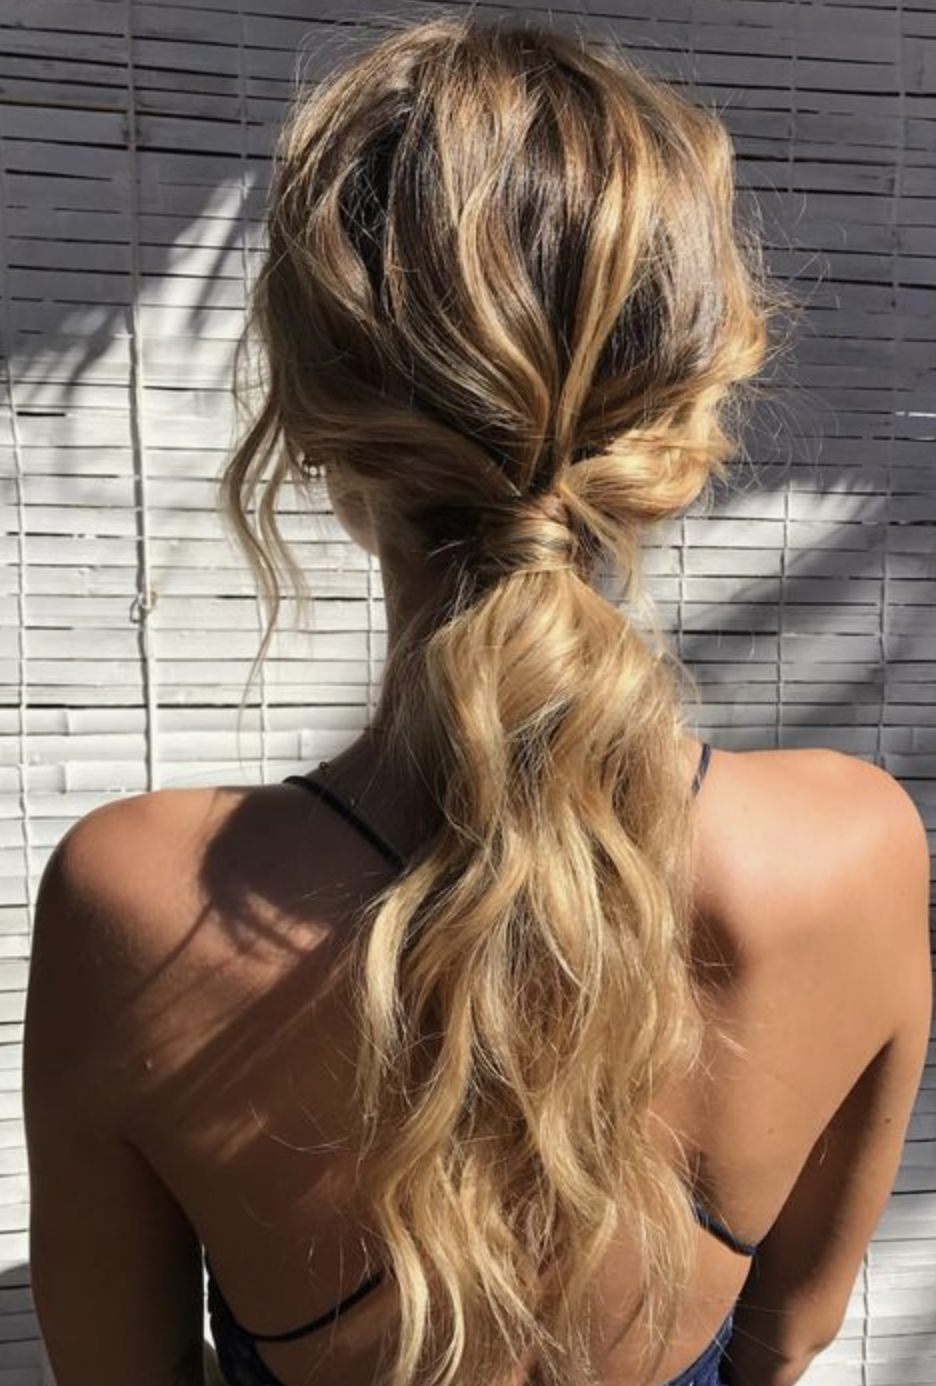 Pin by kelsey stoltenberg on uh a i r obsessionsu pinterest pony